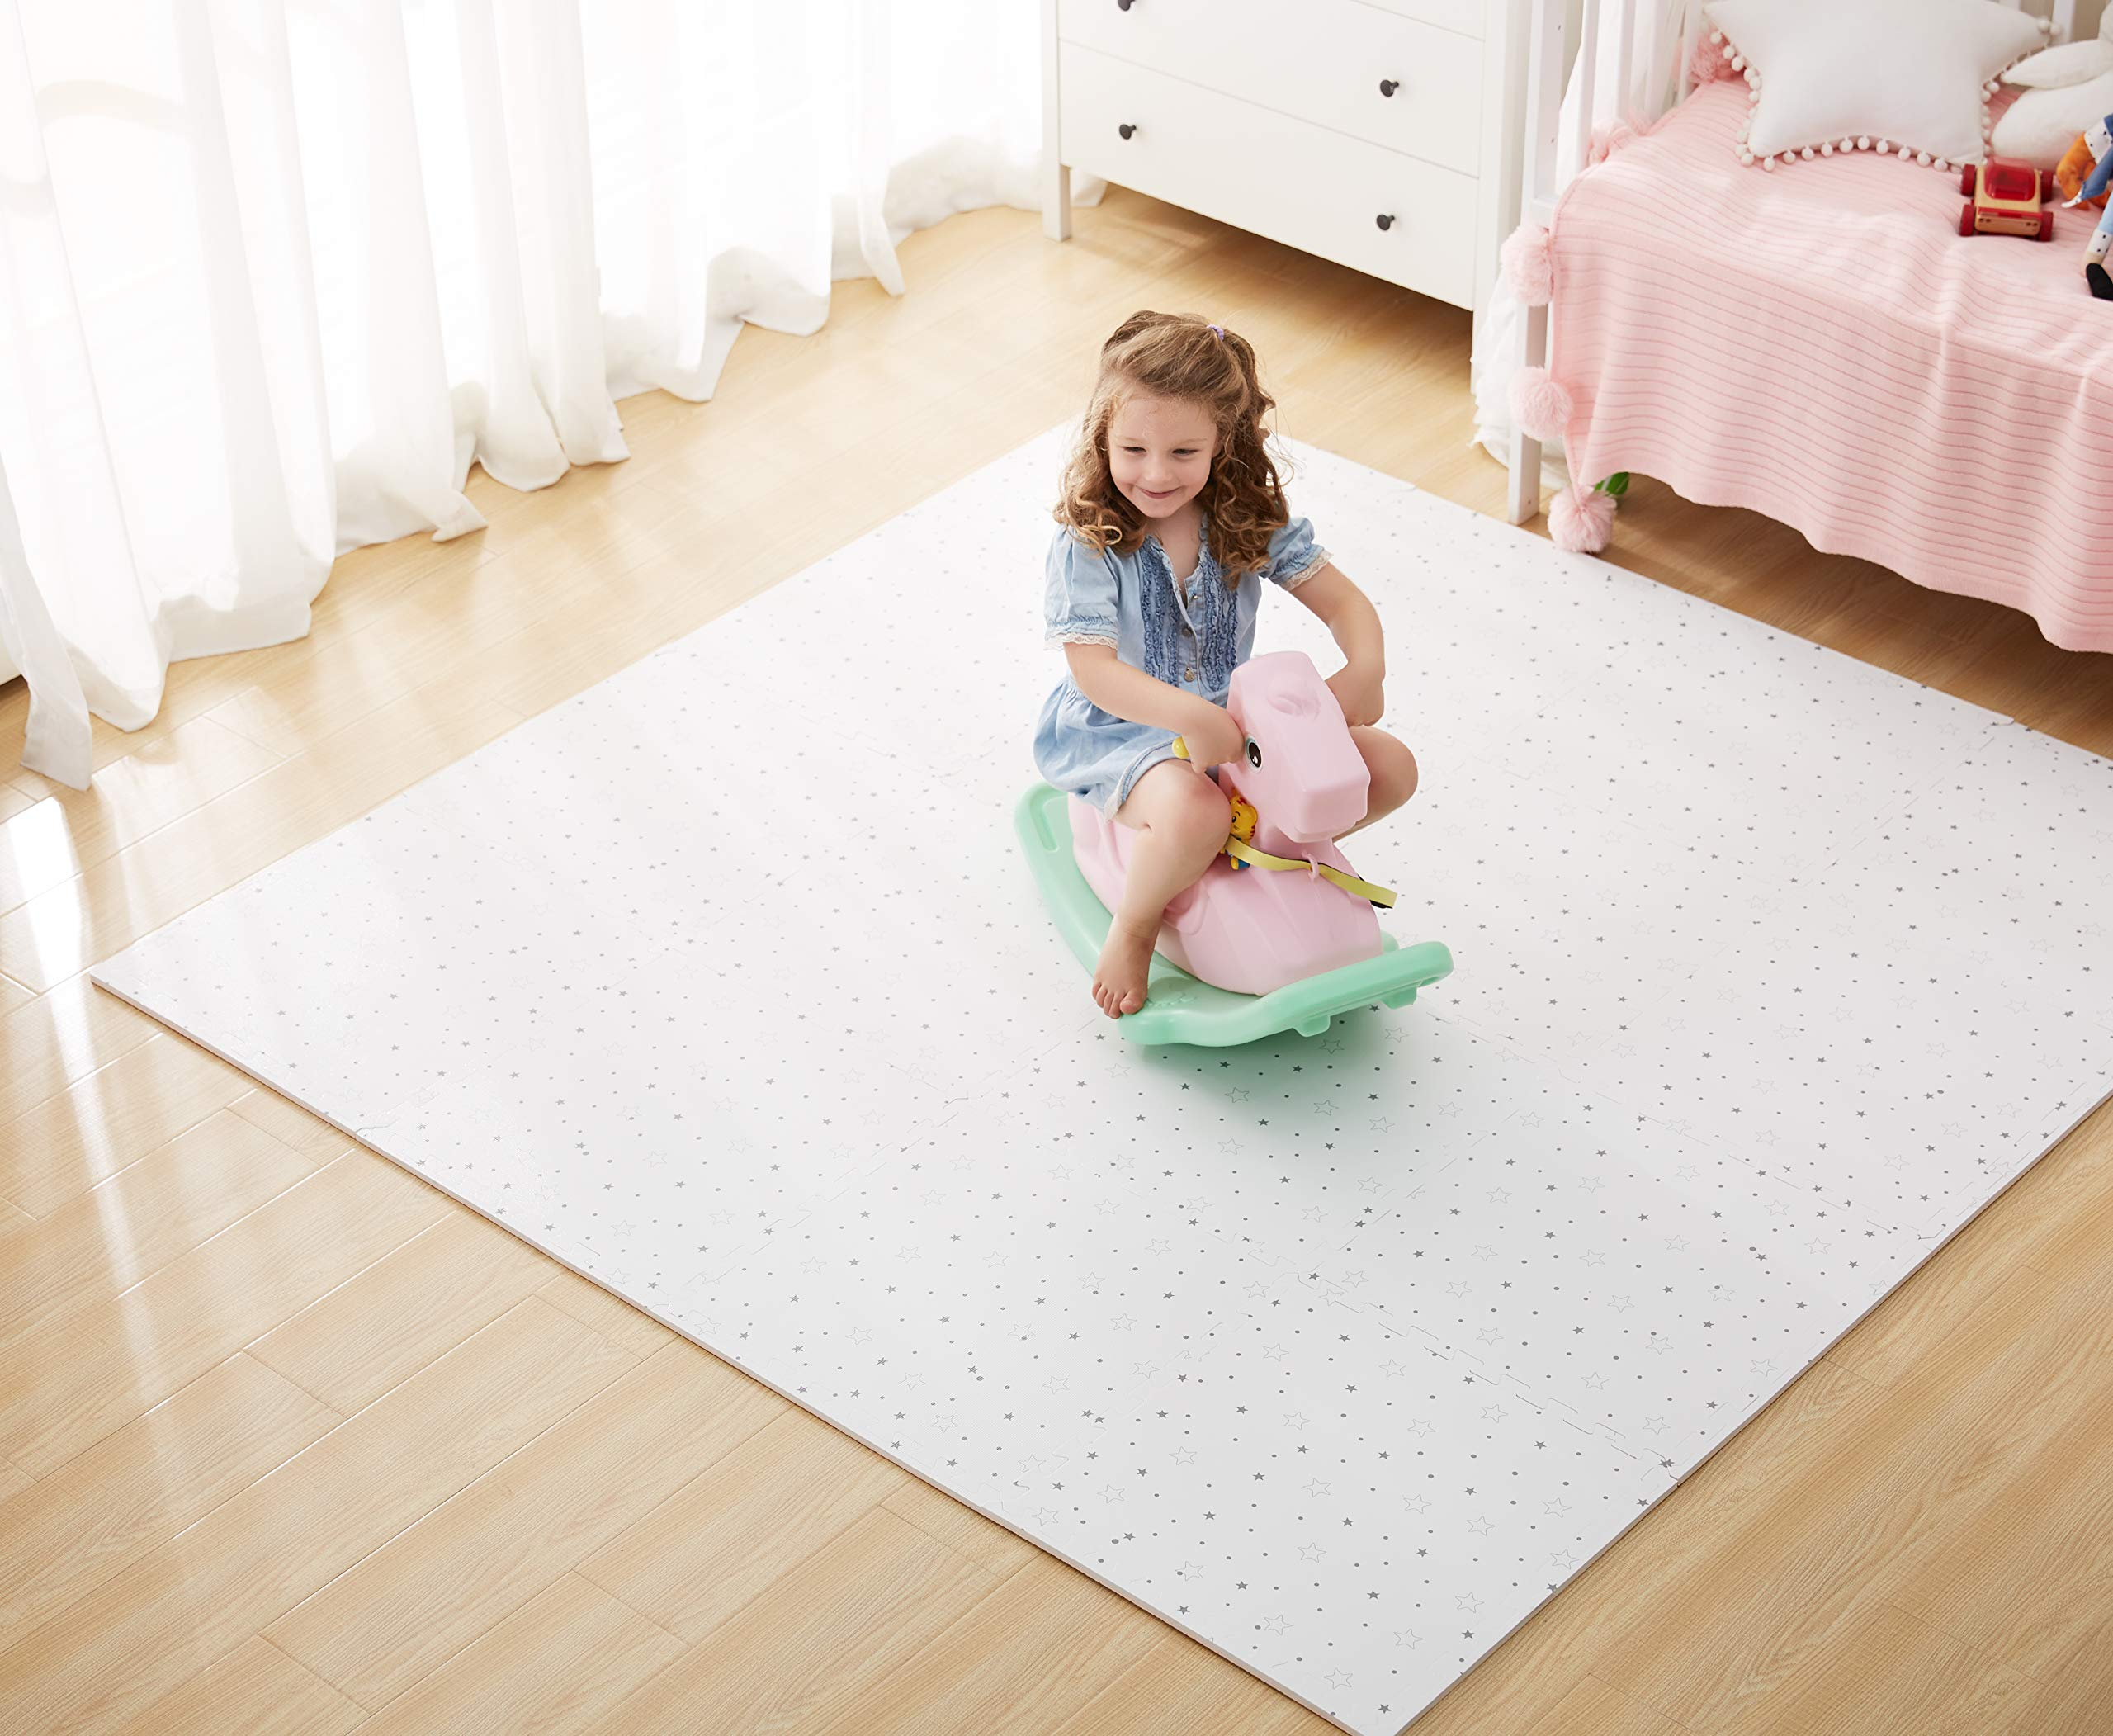 FORSTART Baby Play Mat,¡¾12 Pieces¡¿Non-Toxic Foam Play Mat for Infants, Extra Large (60 x 80 in) Thick (0.8 in) Playmats Floor Puzzle Tiles Soft Crawling Mat for Toddlers, Stylish & Pet-Friendly by FORSTART